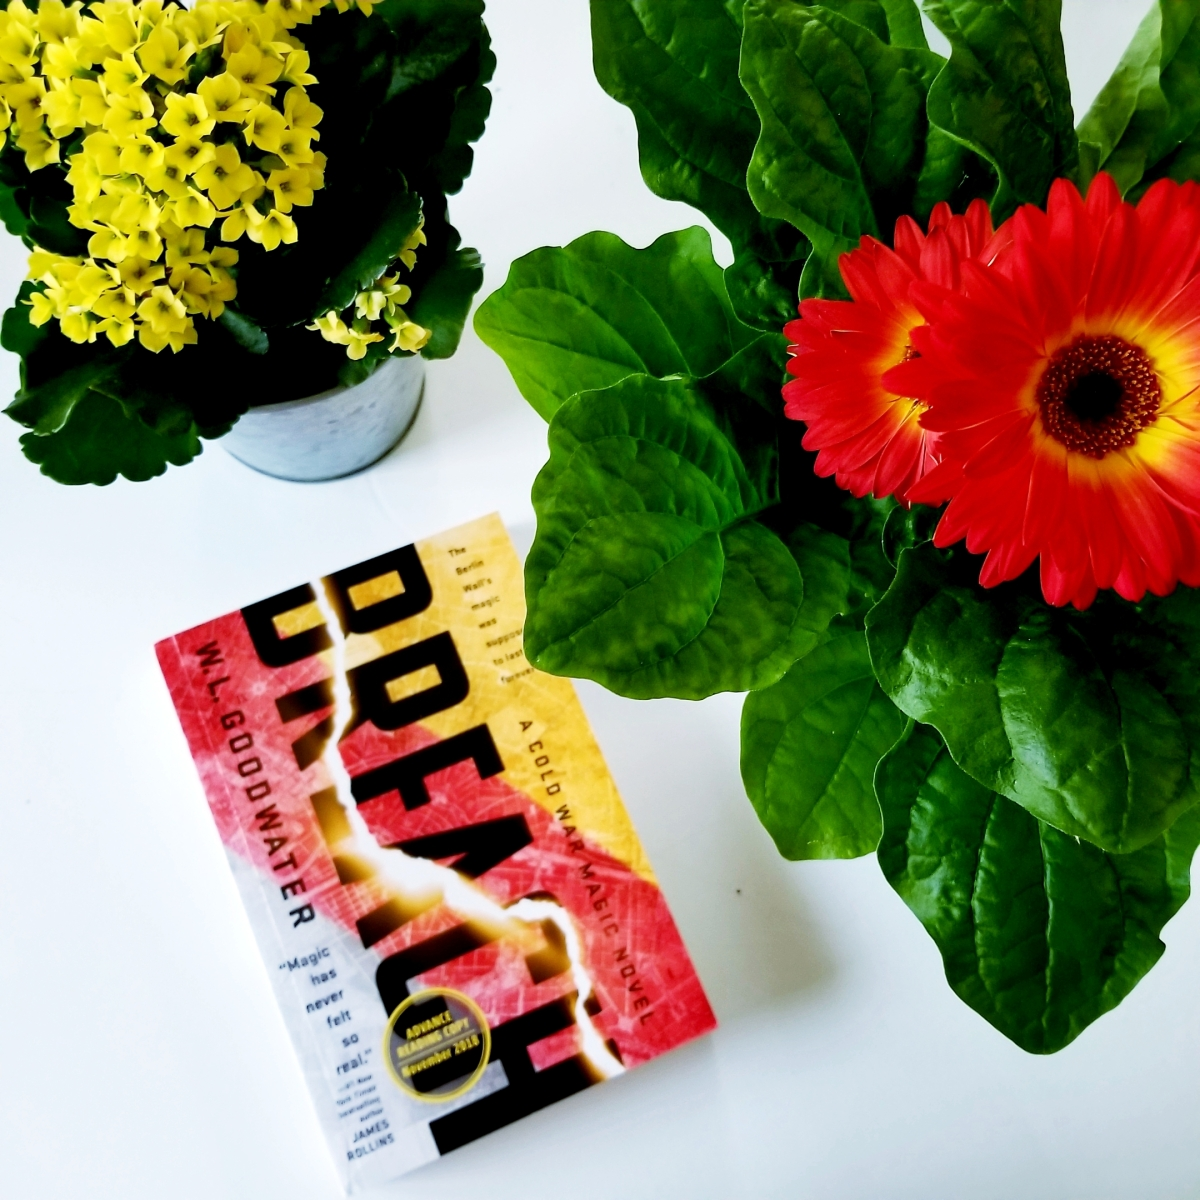 Breach by W.L. Goodwater #bookreview #tarheelreader #thrbreach @wlgoodwater @berkleypub @acerocbooks #breachbook #breach #6bookbestiesbreach #6bookbestieapproved